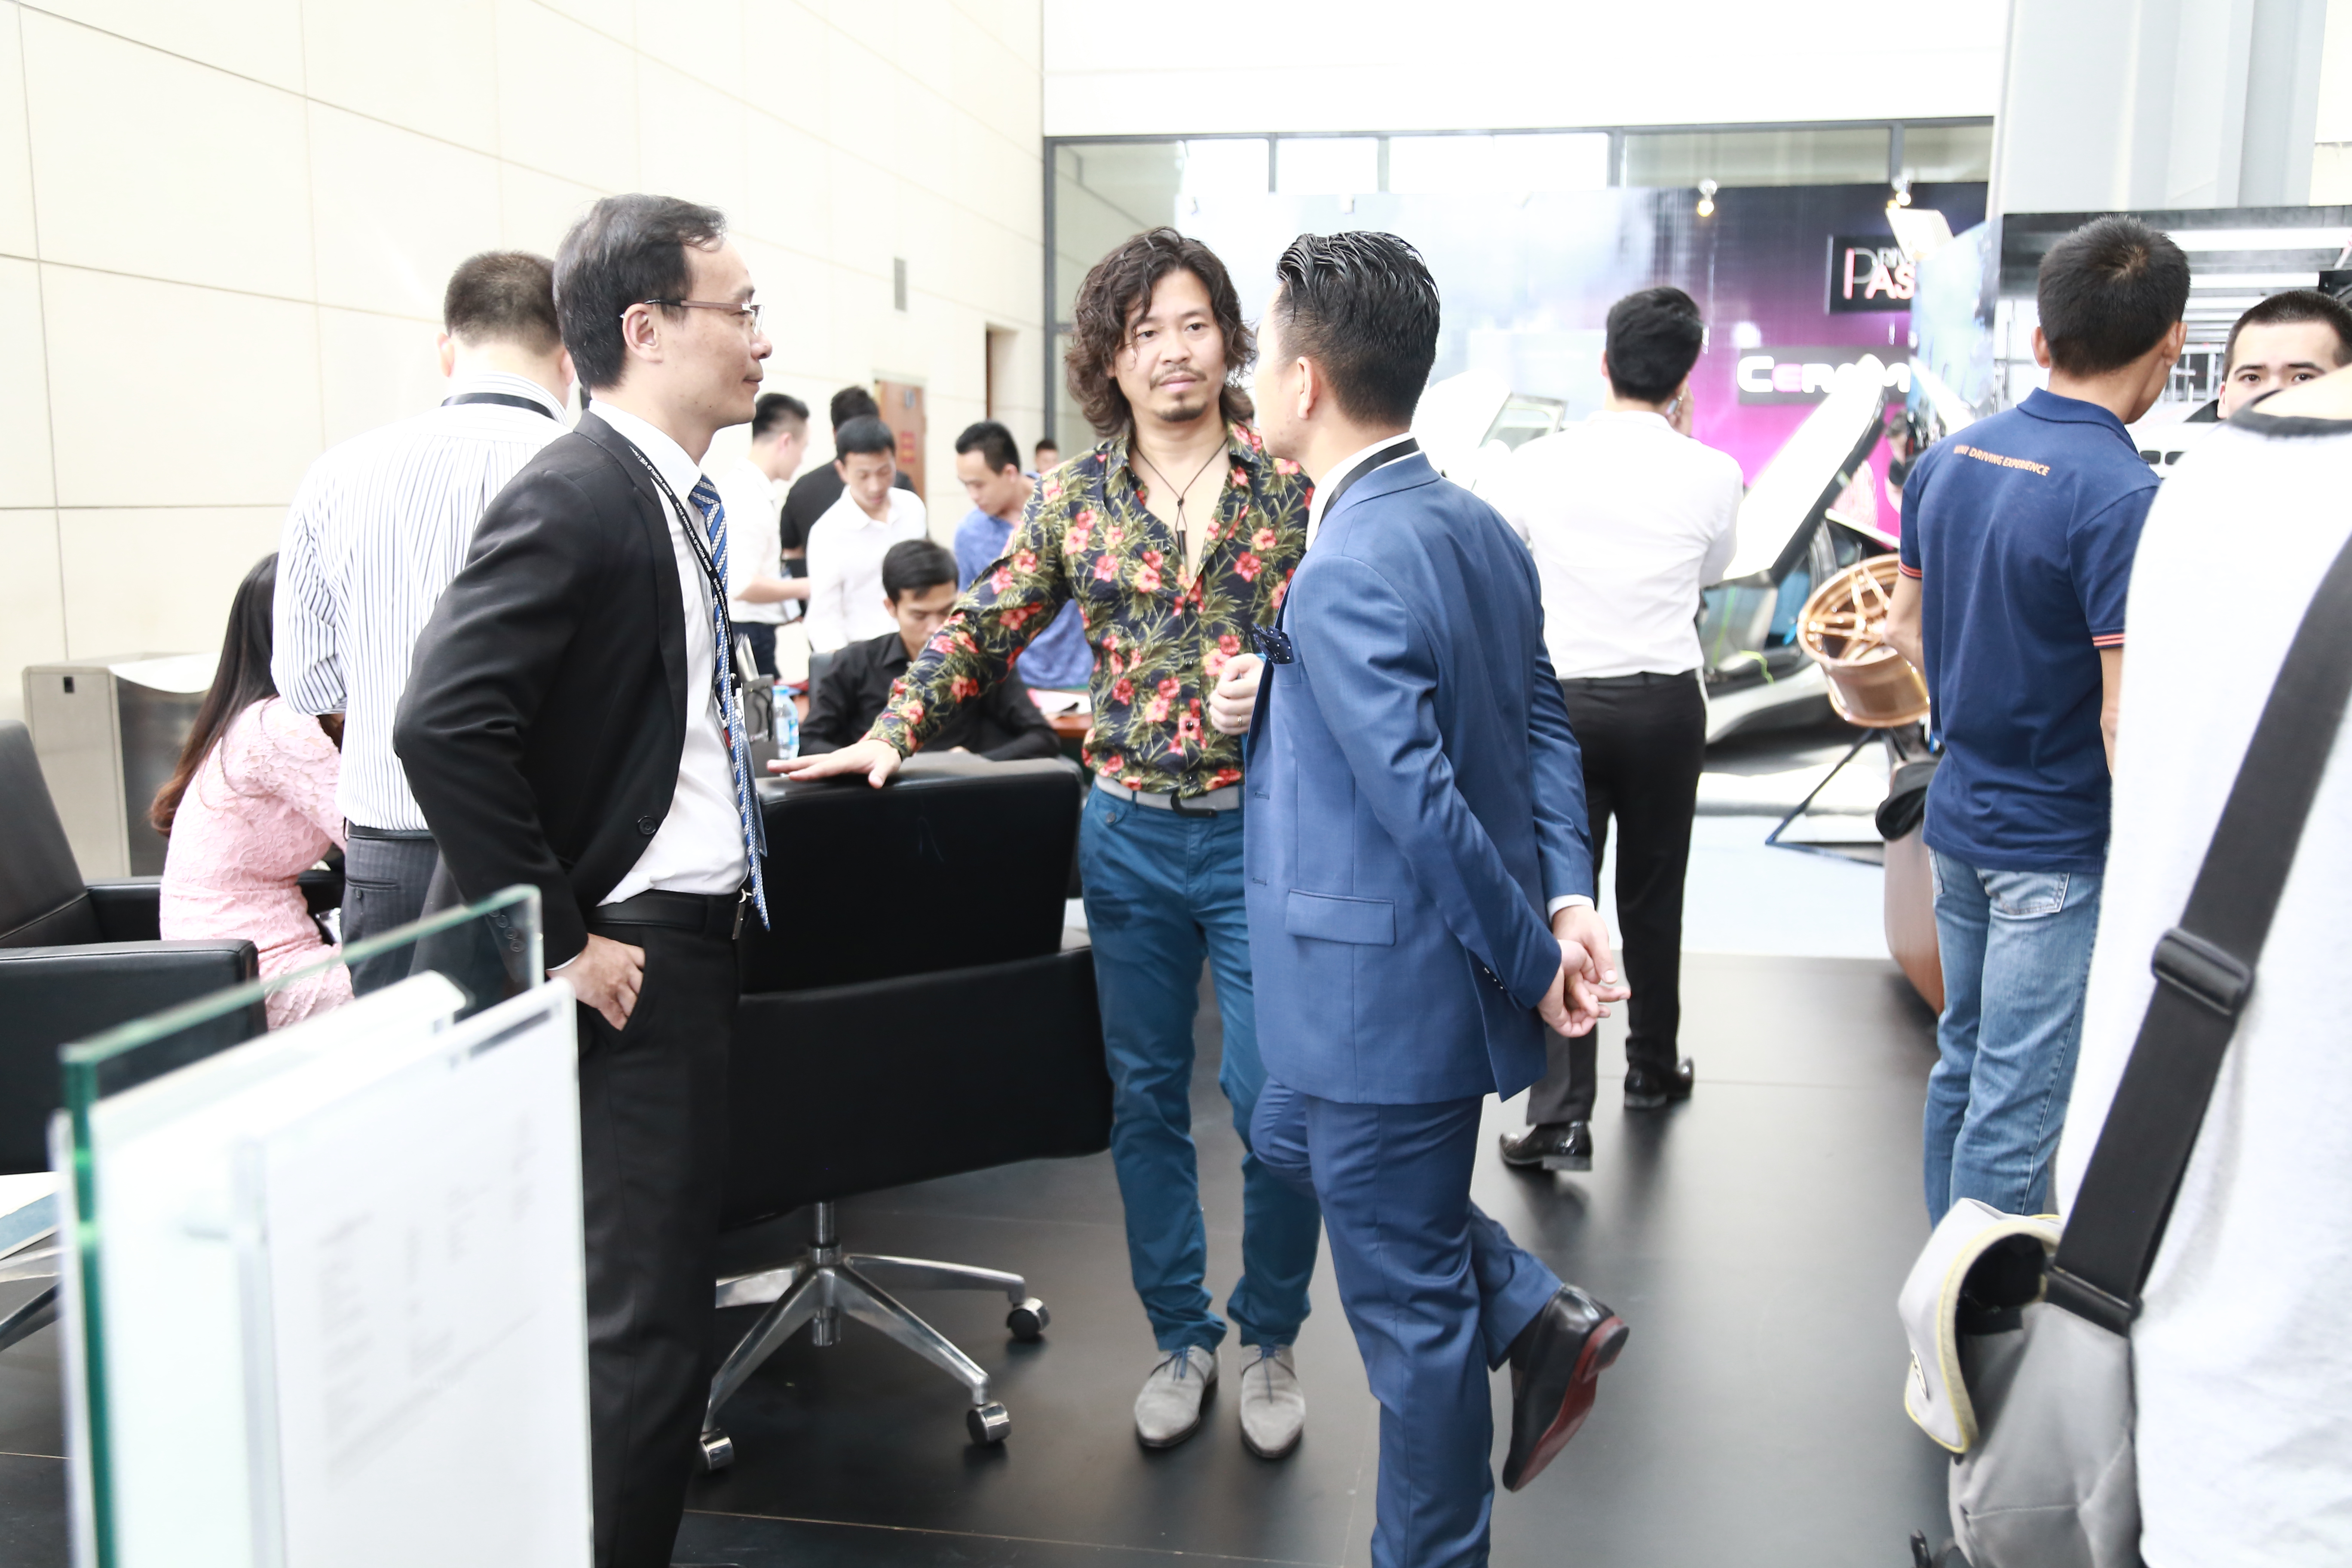 Caoza's Chairman - Mr. Hoang Minh Tuan welcomed guests at the exhibition